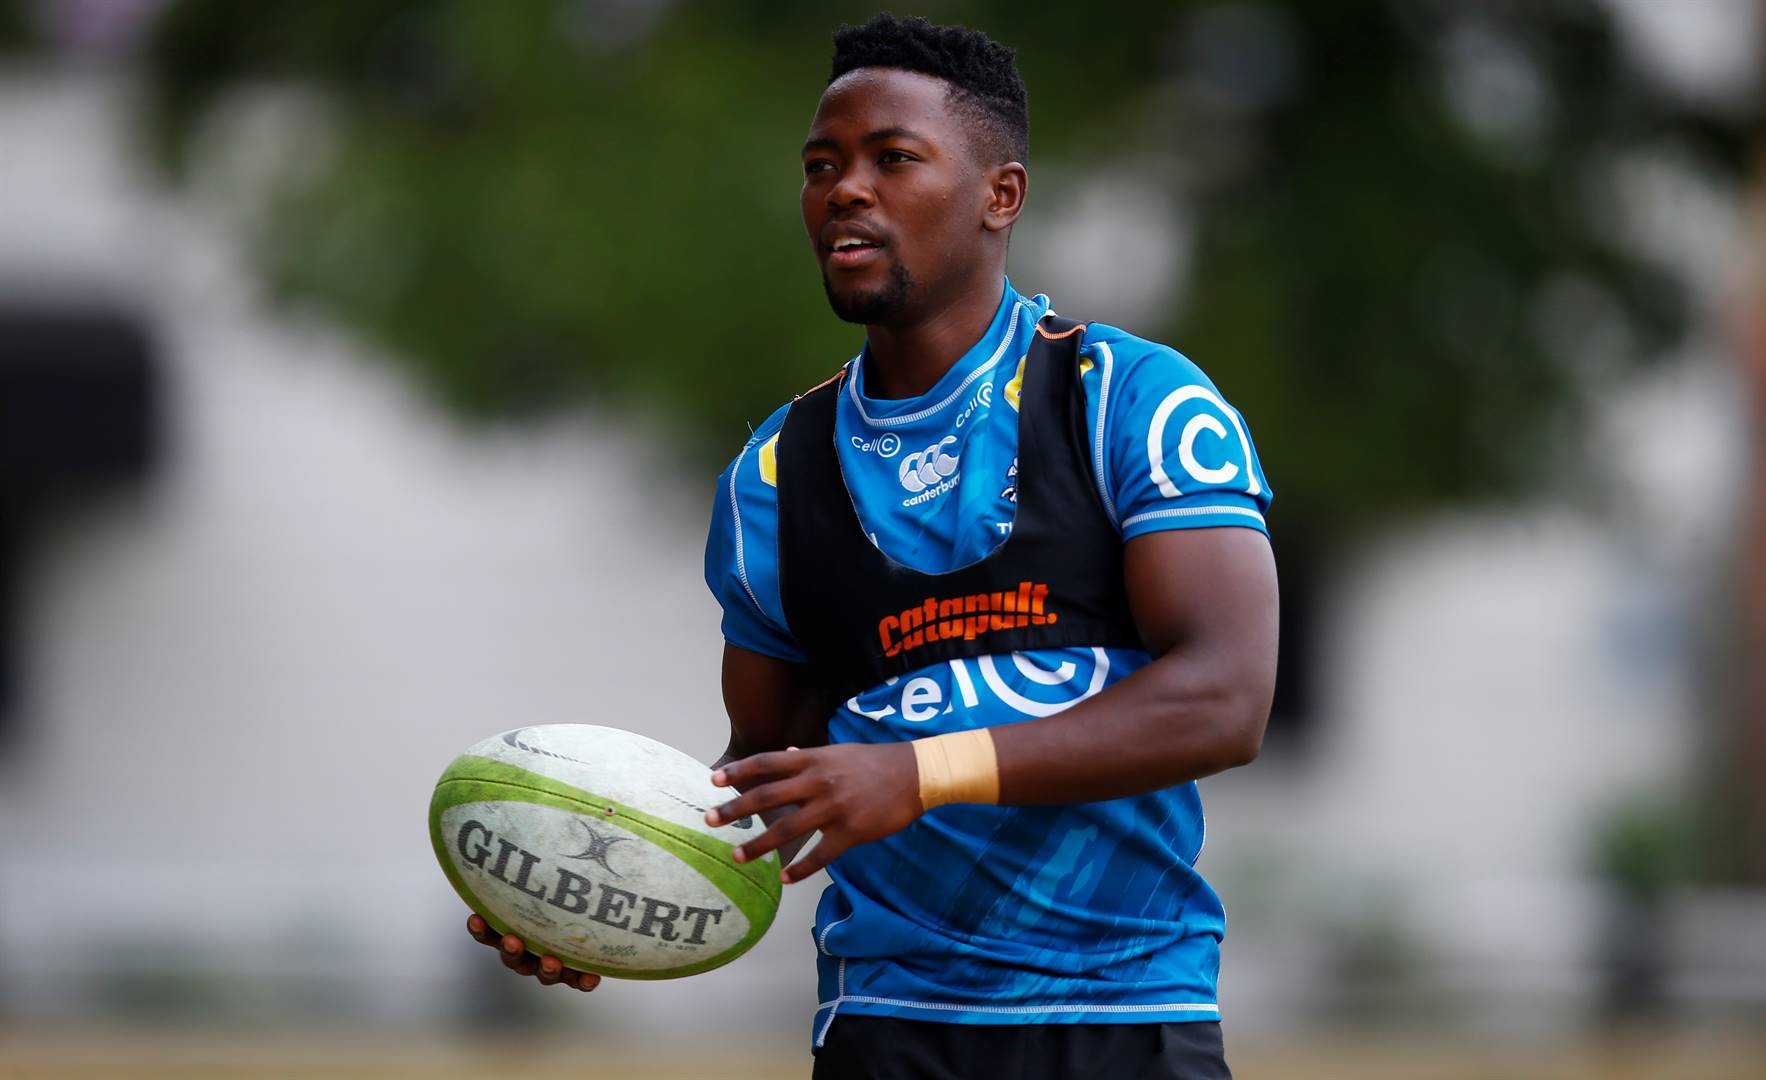 Sanele Nohamba was a promising cricketer in school until an injury forced him to switch sporting codes. Through his performances, he has shown huge potential as a future Springbok. Picture: Gallo Images